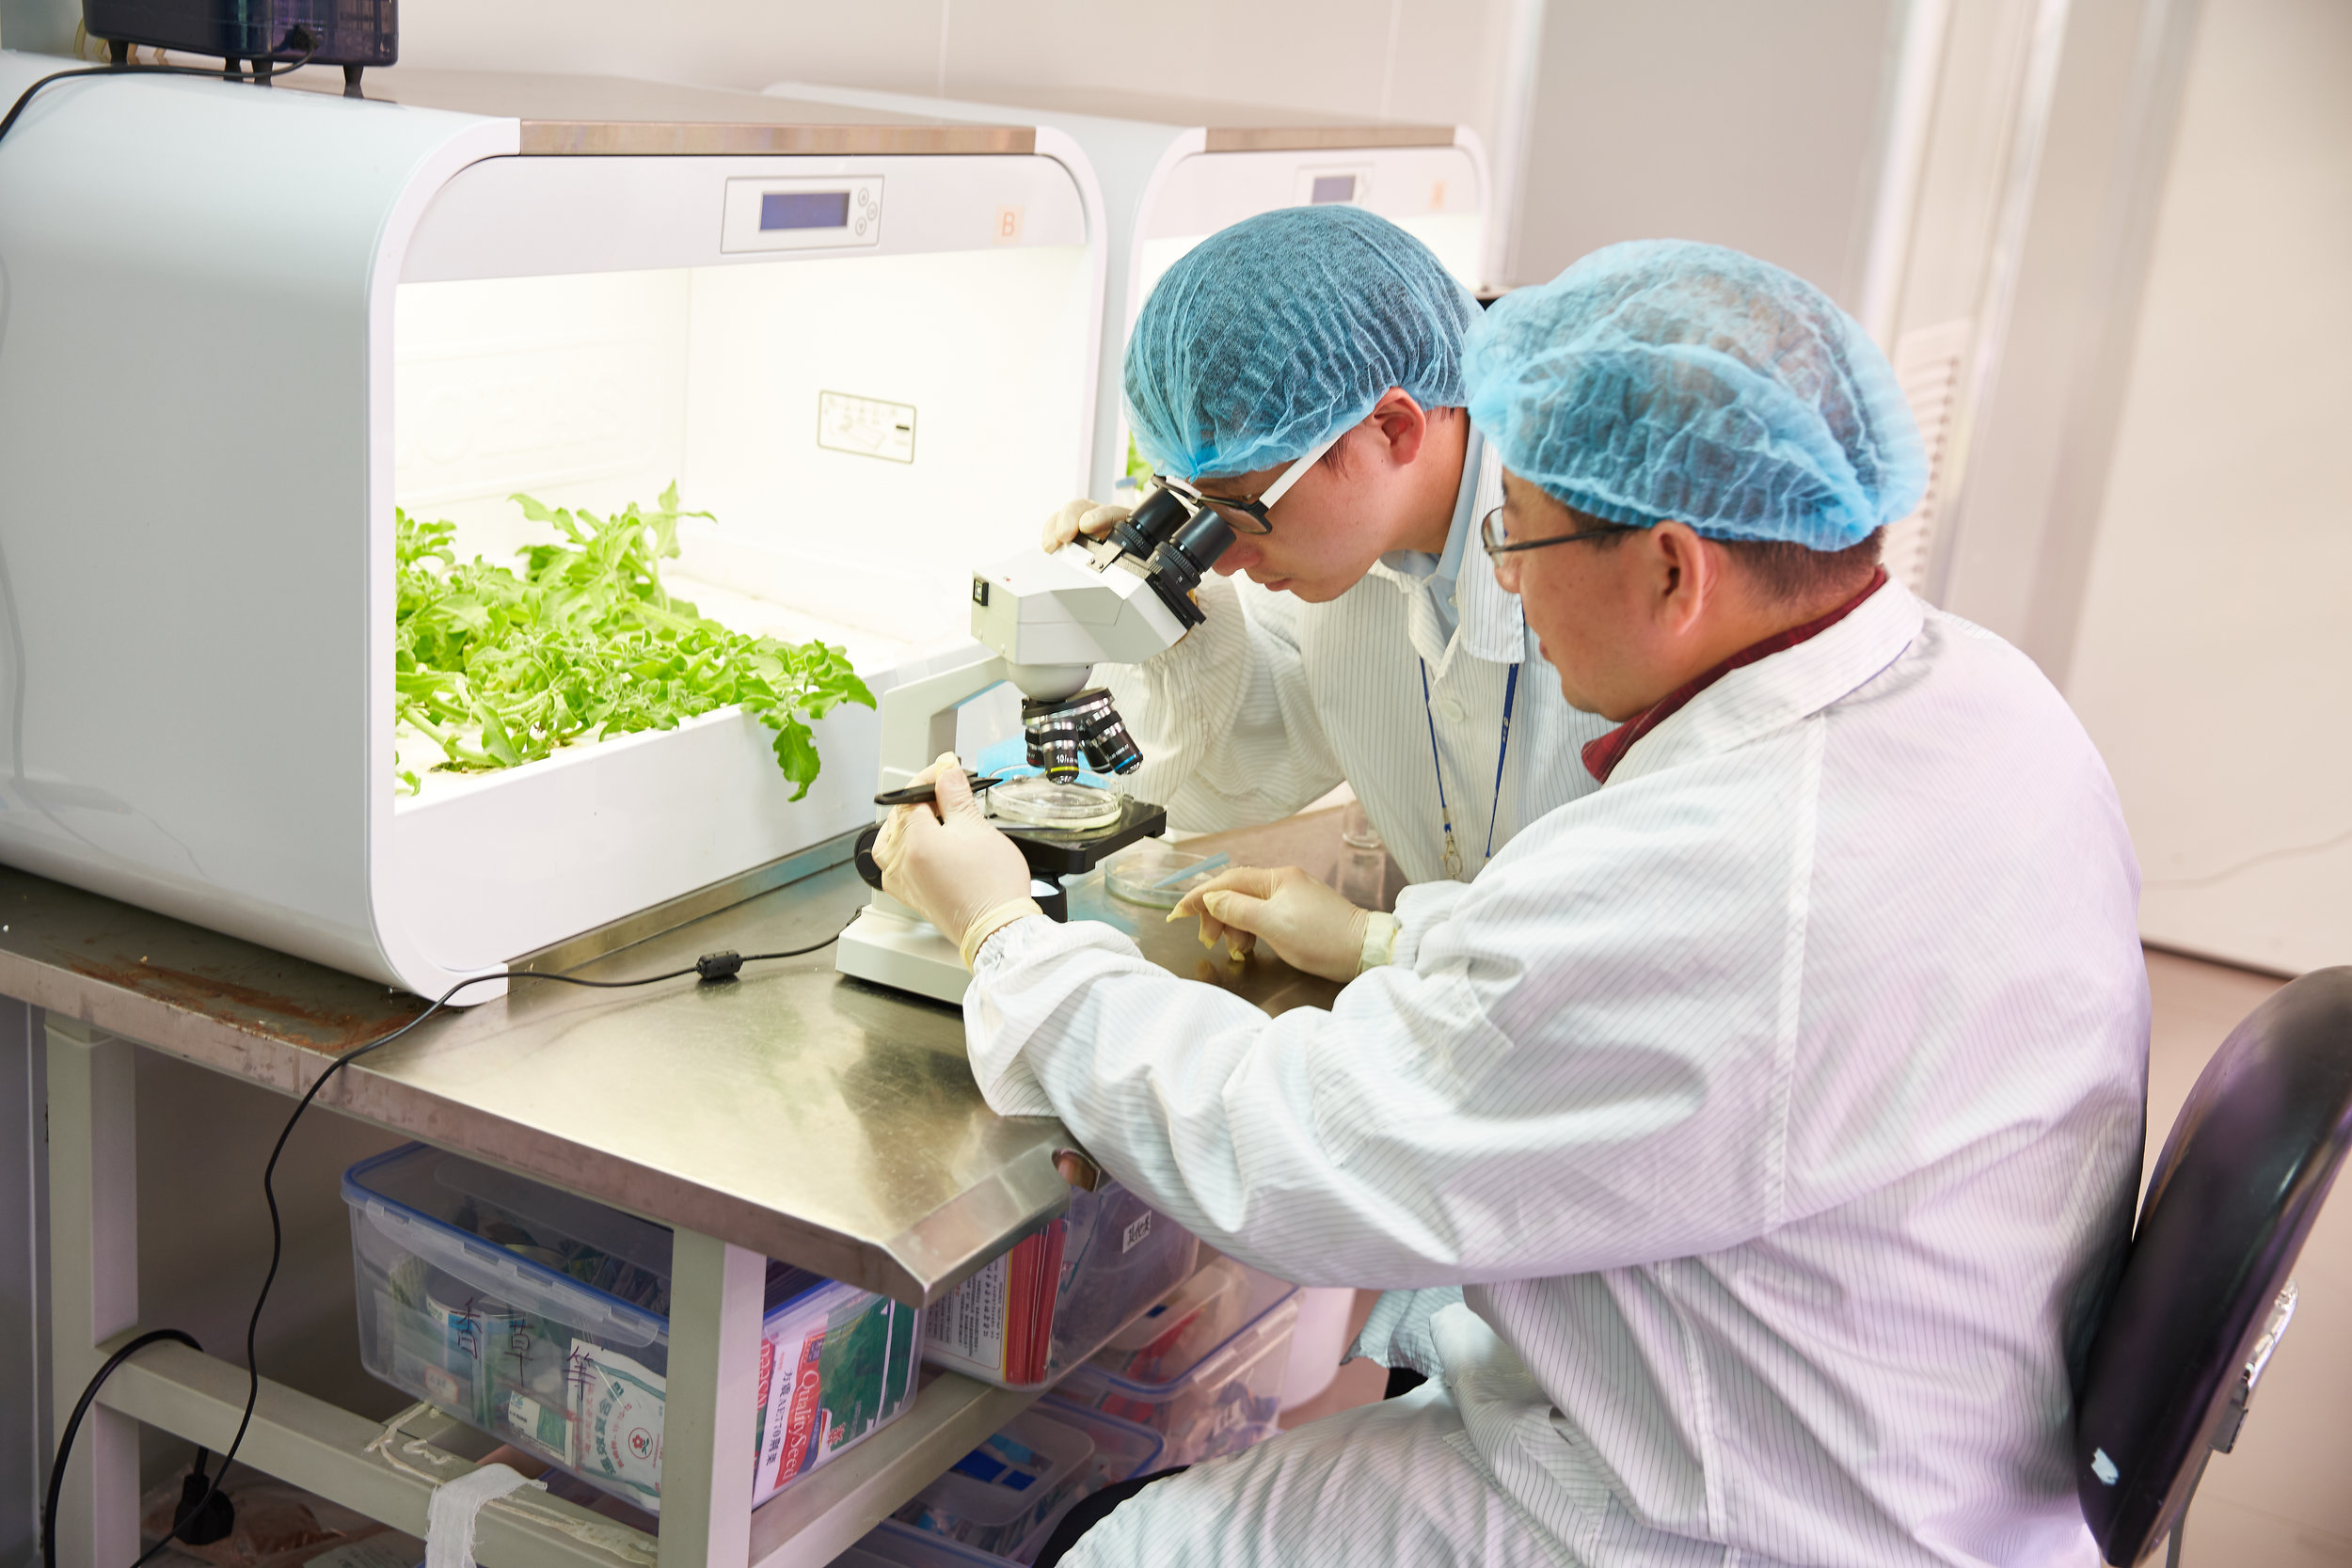 Plant Nutrition is critical to unlocking plant genetics.